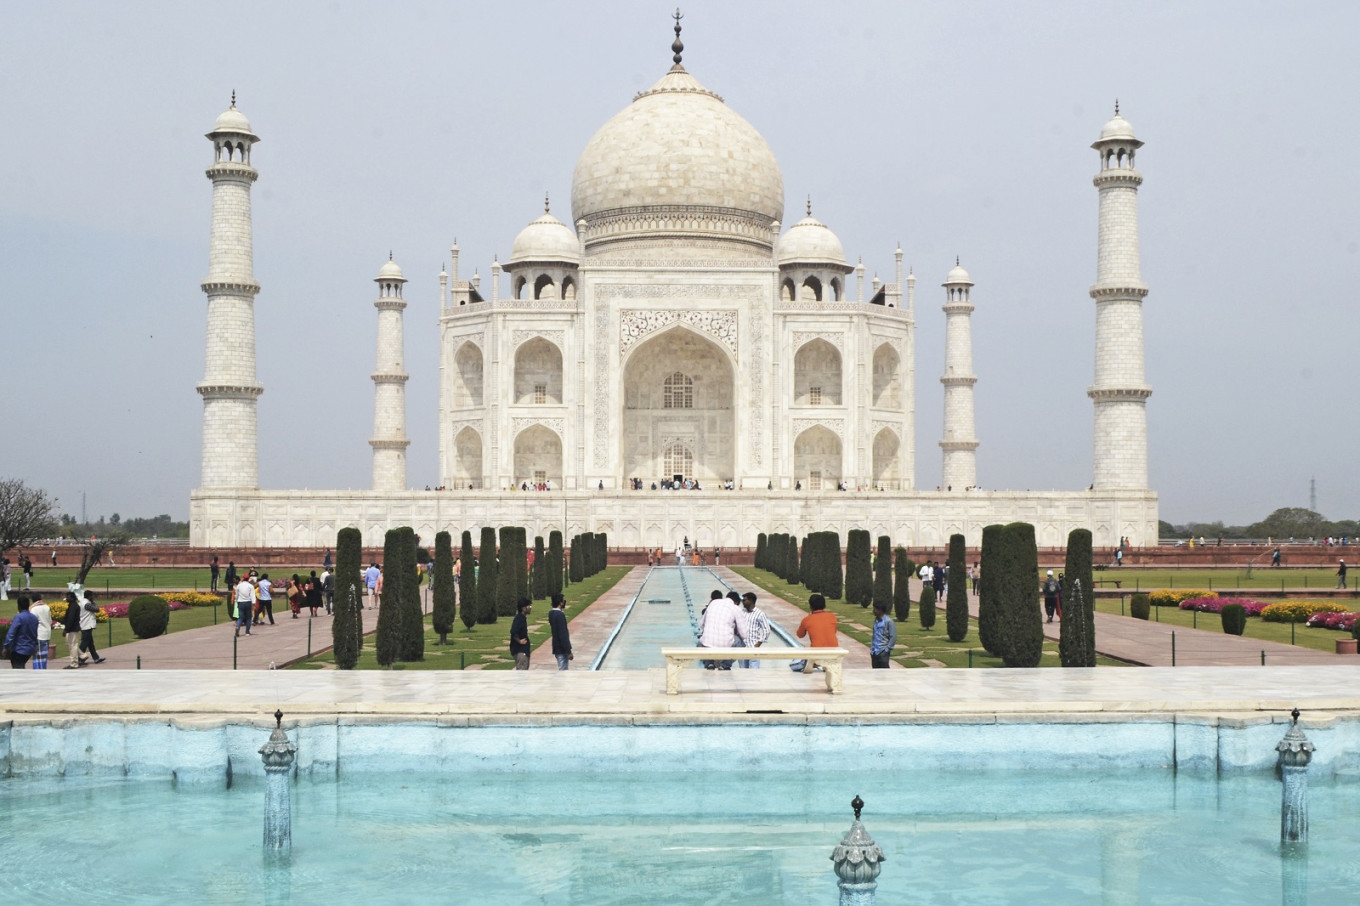 India To Reopen Taj Mahal With Social Distancing Masks News The Jakarta Post